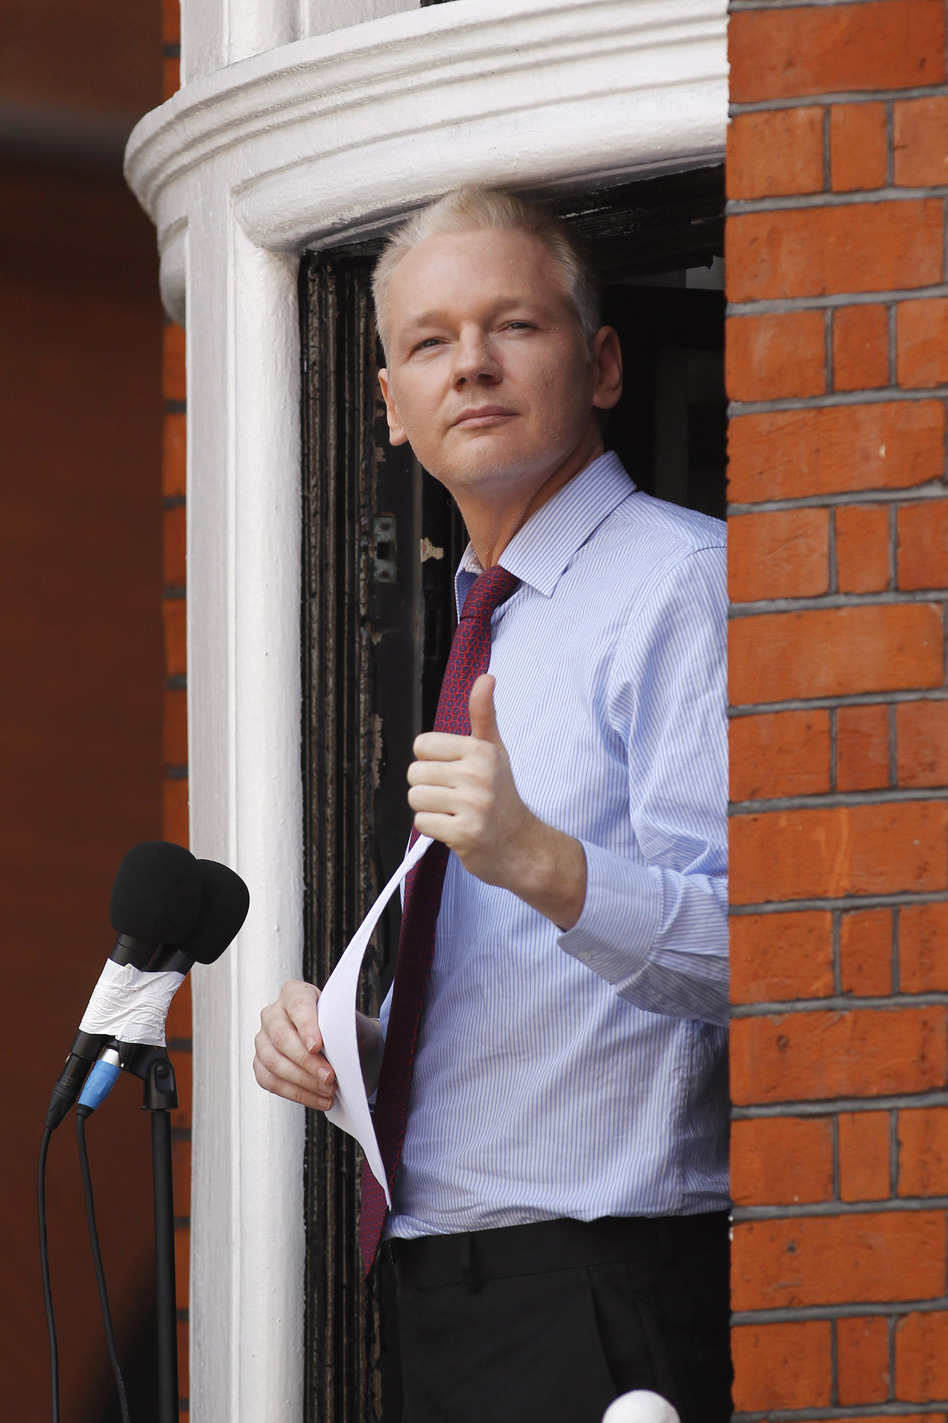 Julian Assange, founder of WikiLeaks, makes a statement from a balcony of the Ecuadorian embassy in London on Sunday.